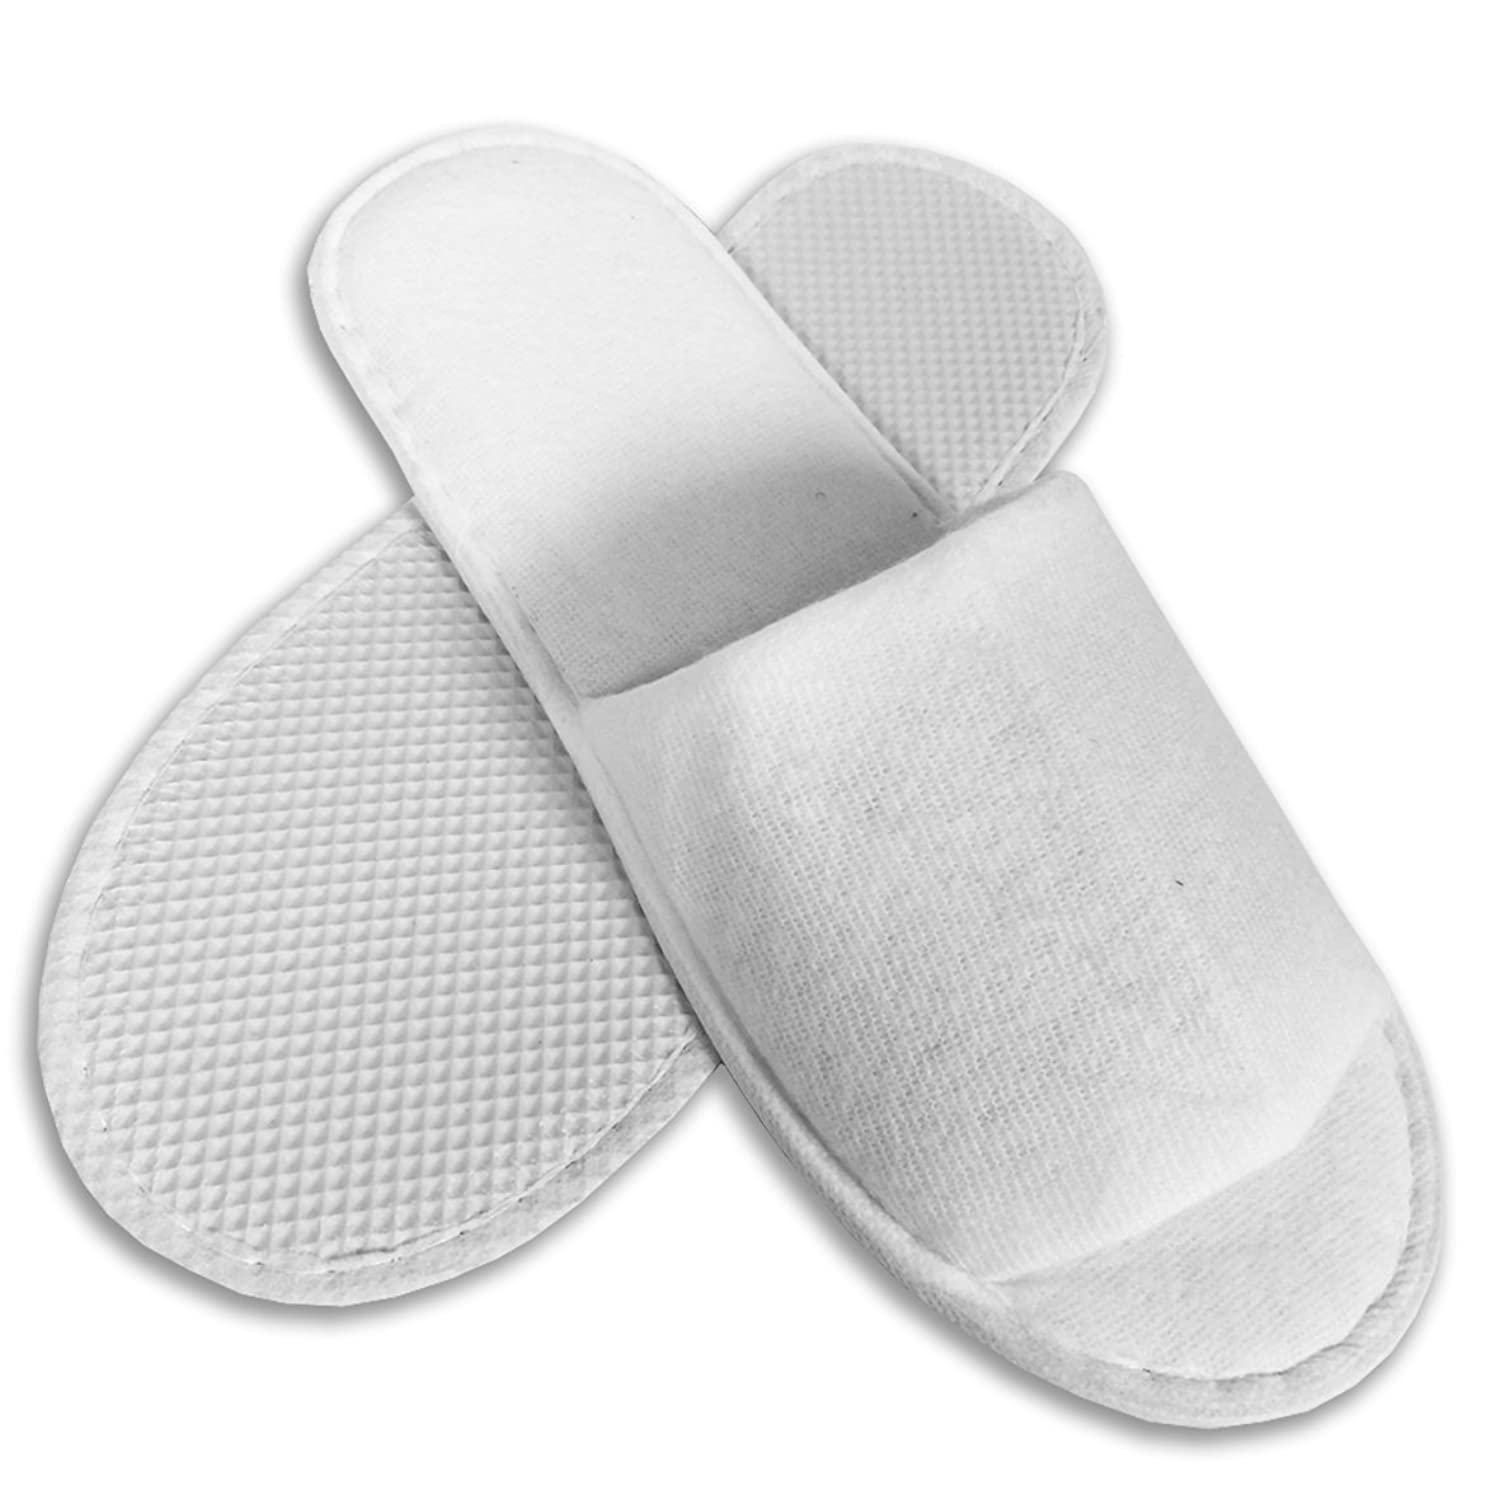 4214ce768d21 10 Pairs SPA HOTEL Guest SLIPPERS OPEN TOE TOWELLING DISPOSABLE TERRY STYLE  NEW